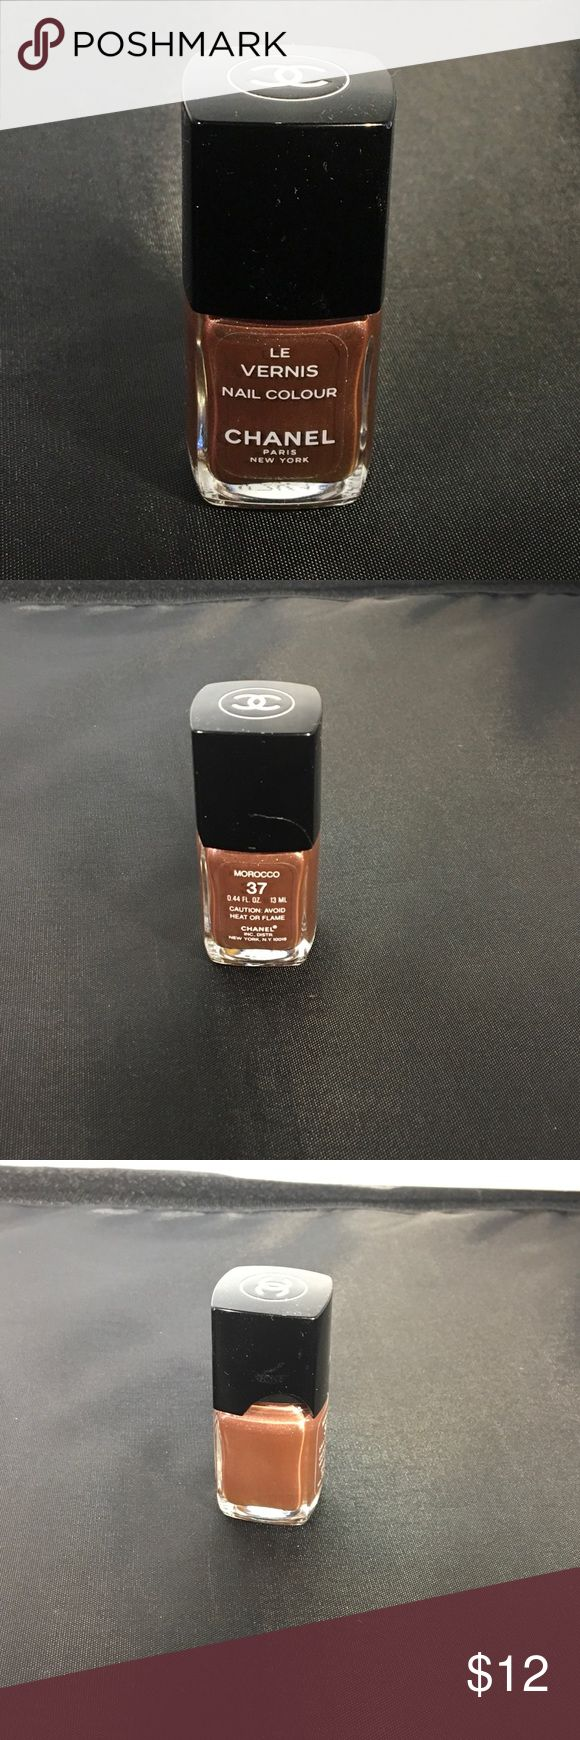 LAST CHANCE! Chanel RARE Nail Polish Morocco 37 Three quarter full.  Lid is cracked and broken but has no effect on polish. PRICE FIRM. CHANEL Makeup